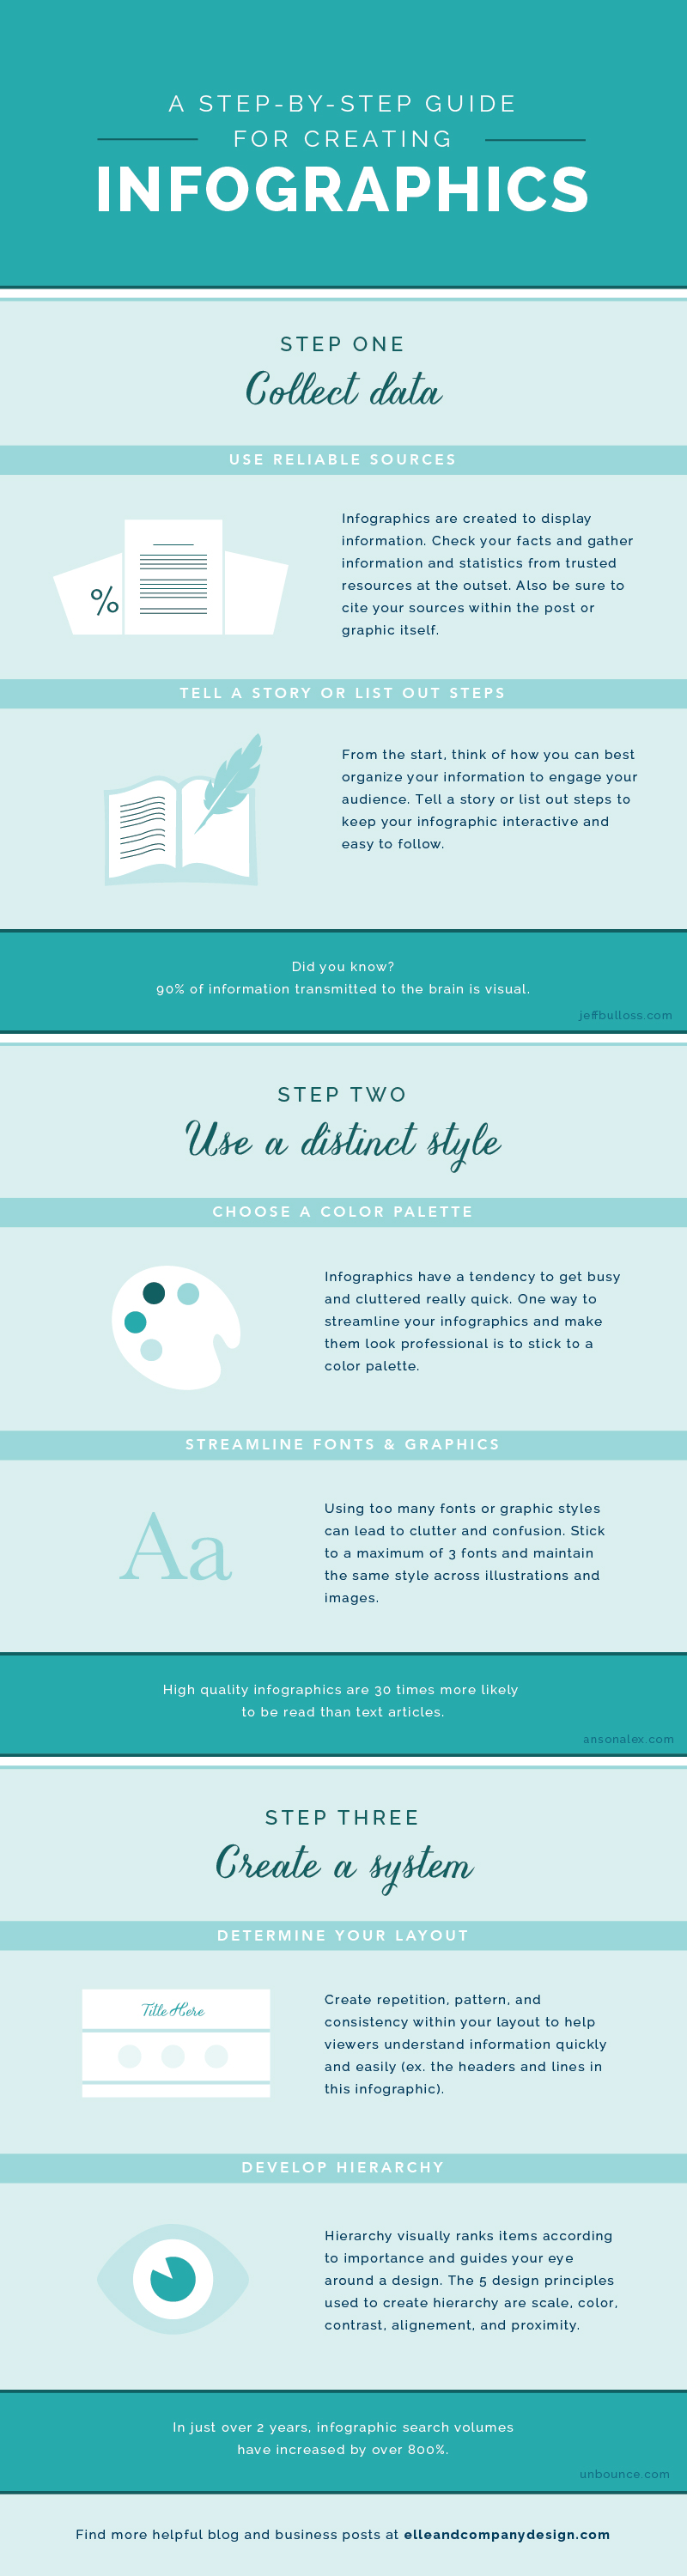 A Step-By-Step Guide for Creating Infographics | Elle & Company